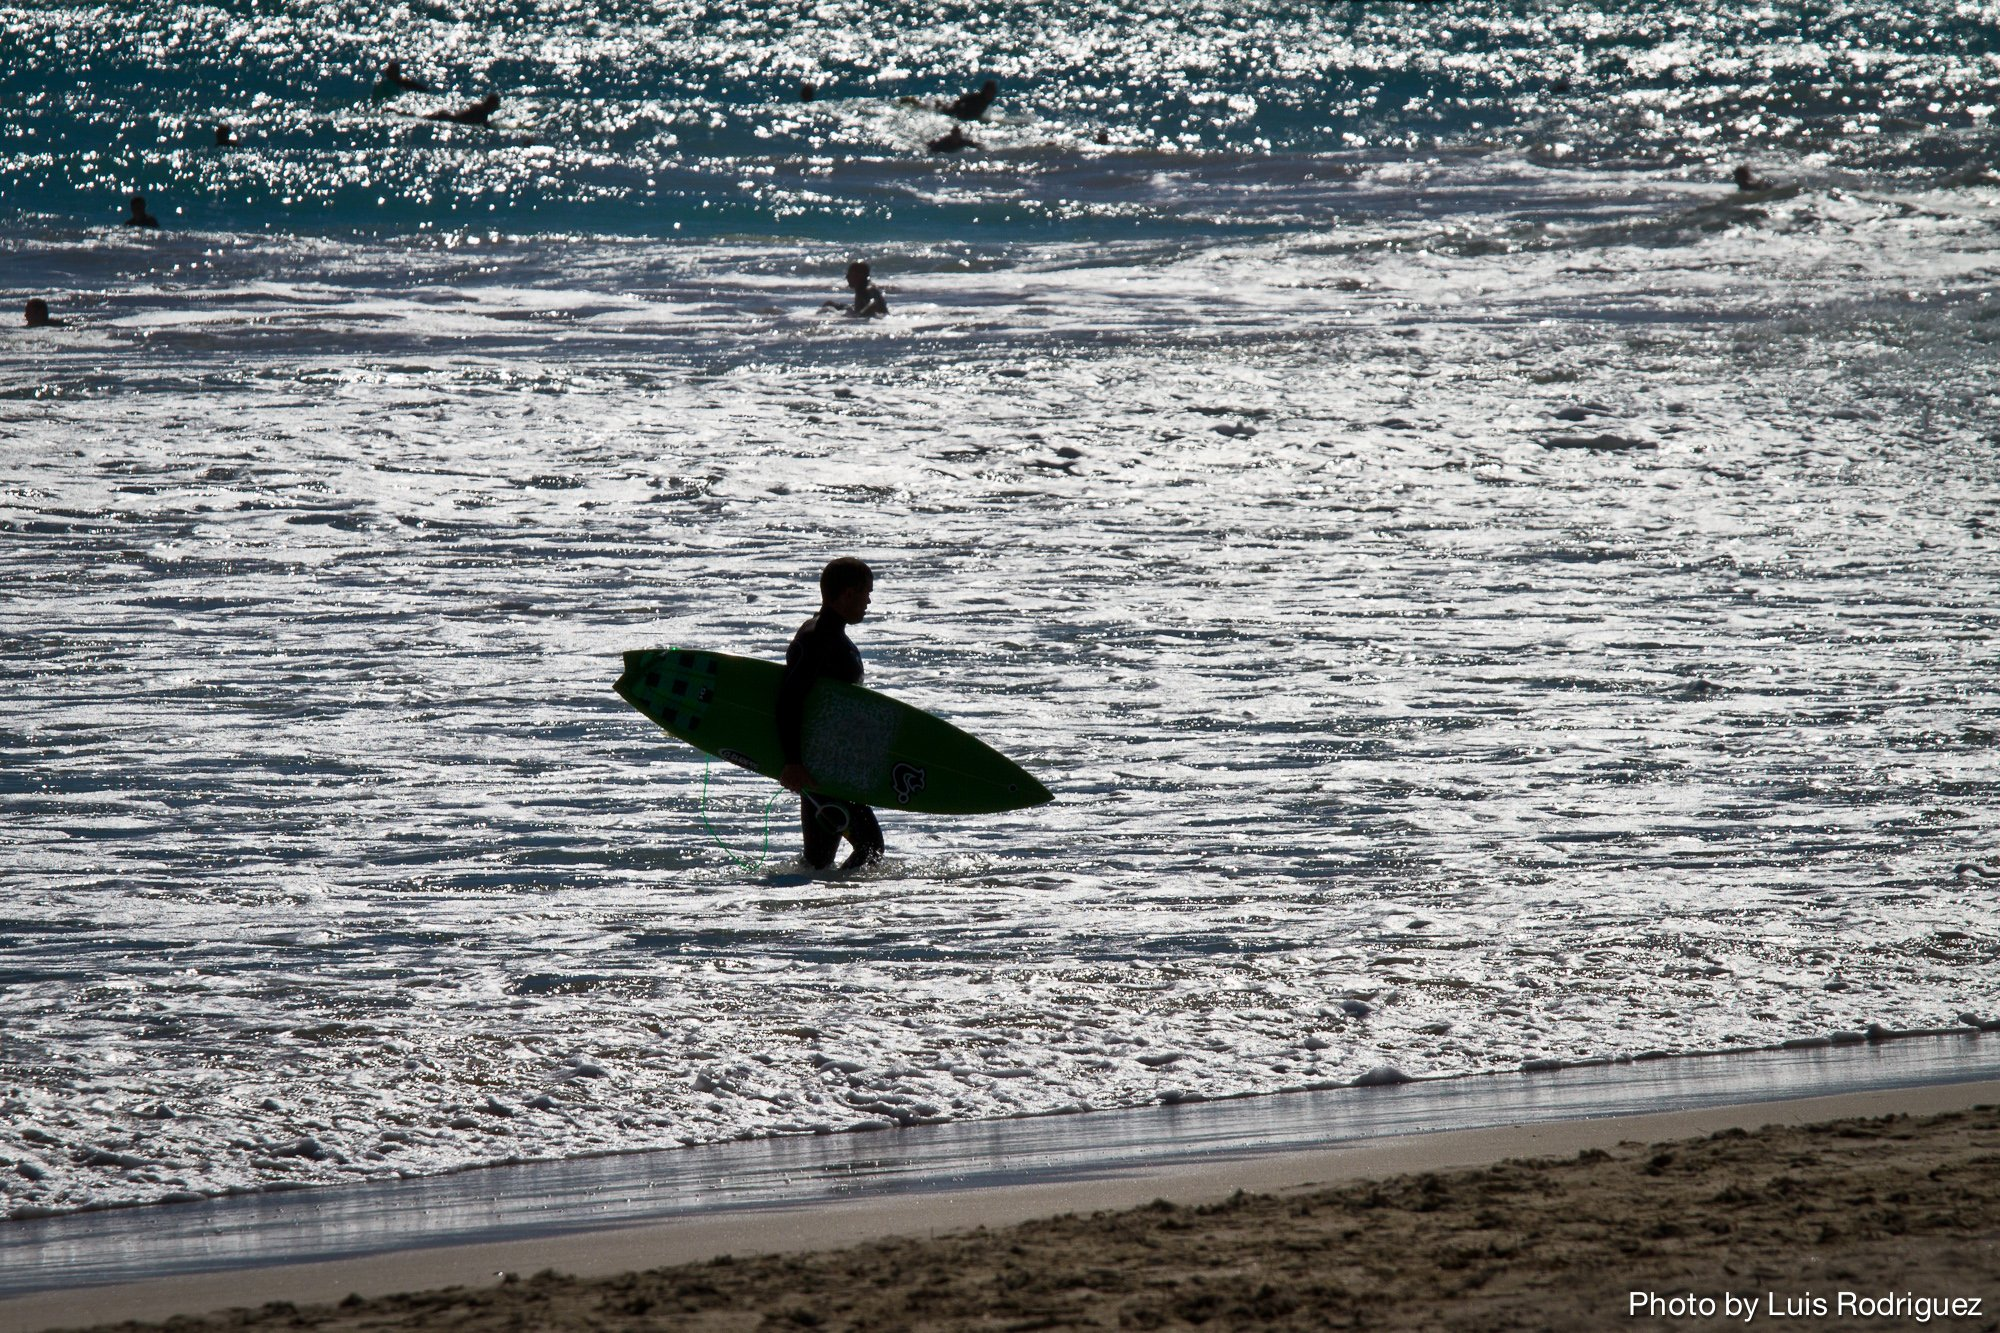 Surfer in Miami